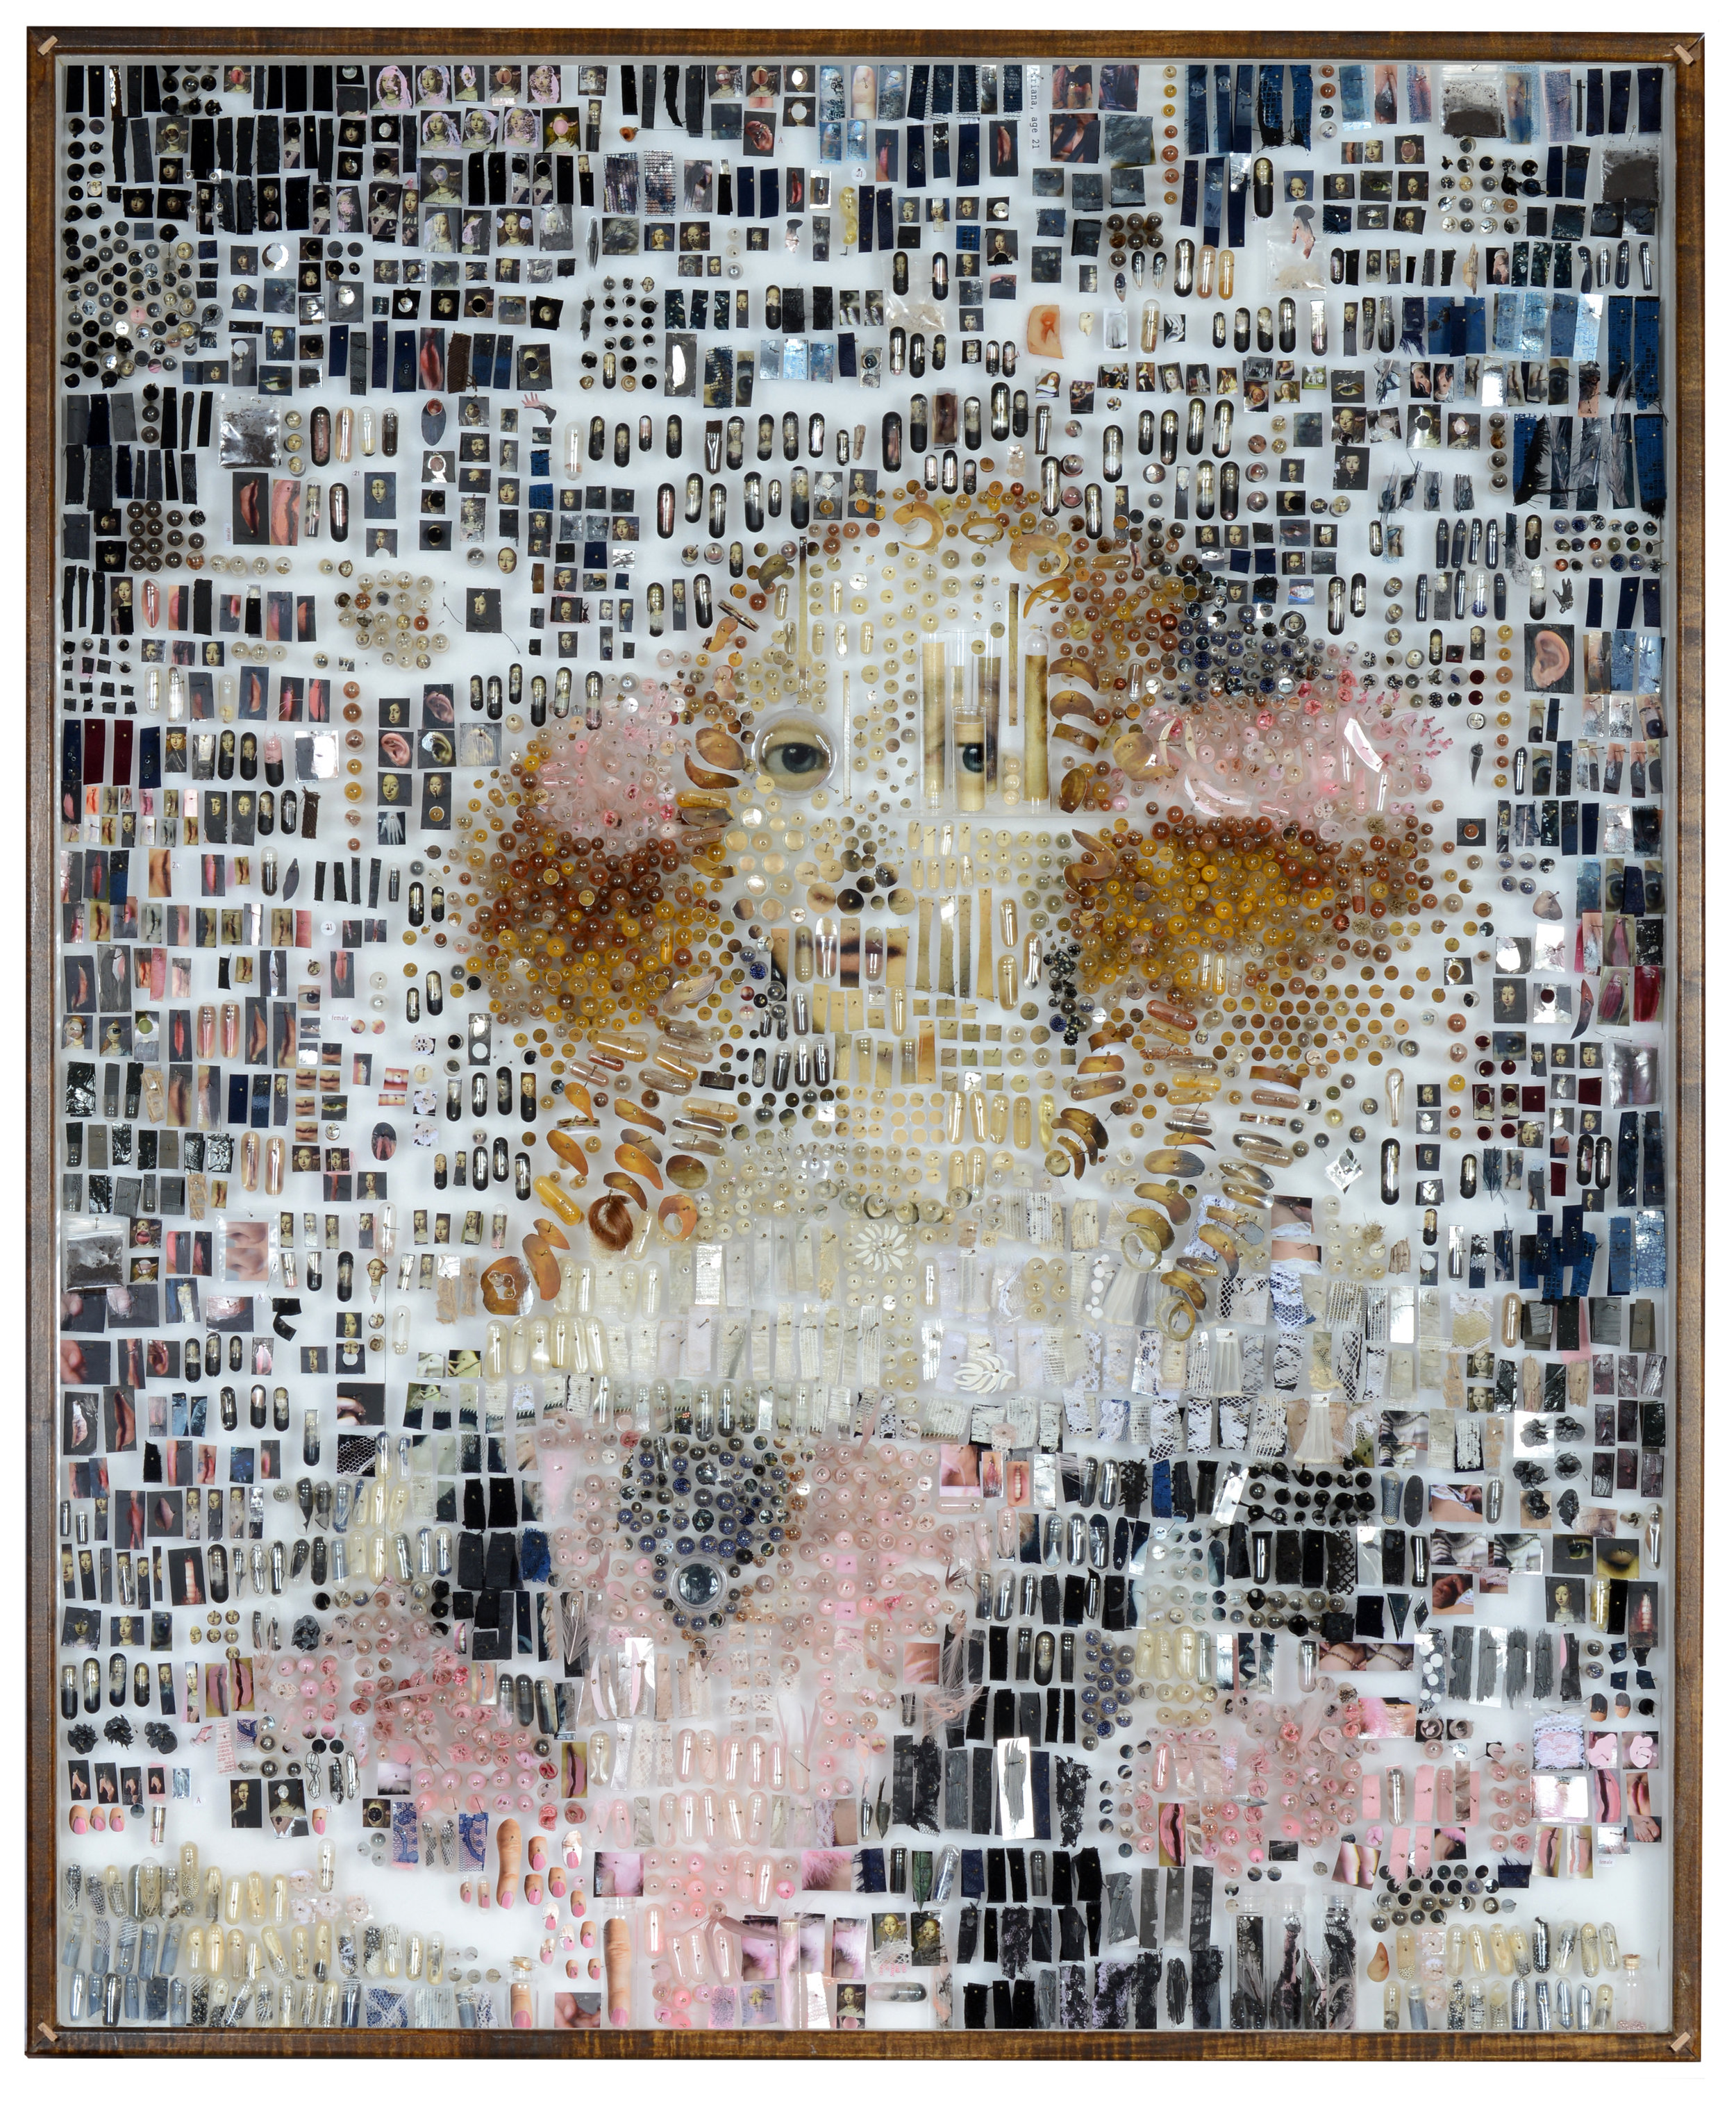 """Adriana: Female   2014    34""""L x 28""""w x 3.5d""""  photographs, fabric samples, painted photographs, botanical specimens, hair, crystals, costume jewelry, spices, cast resin, clay, thread, insect pins, capsules, specimen bags, perfume vials"""